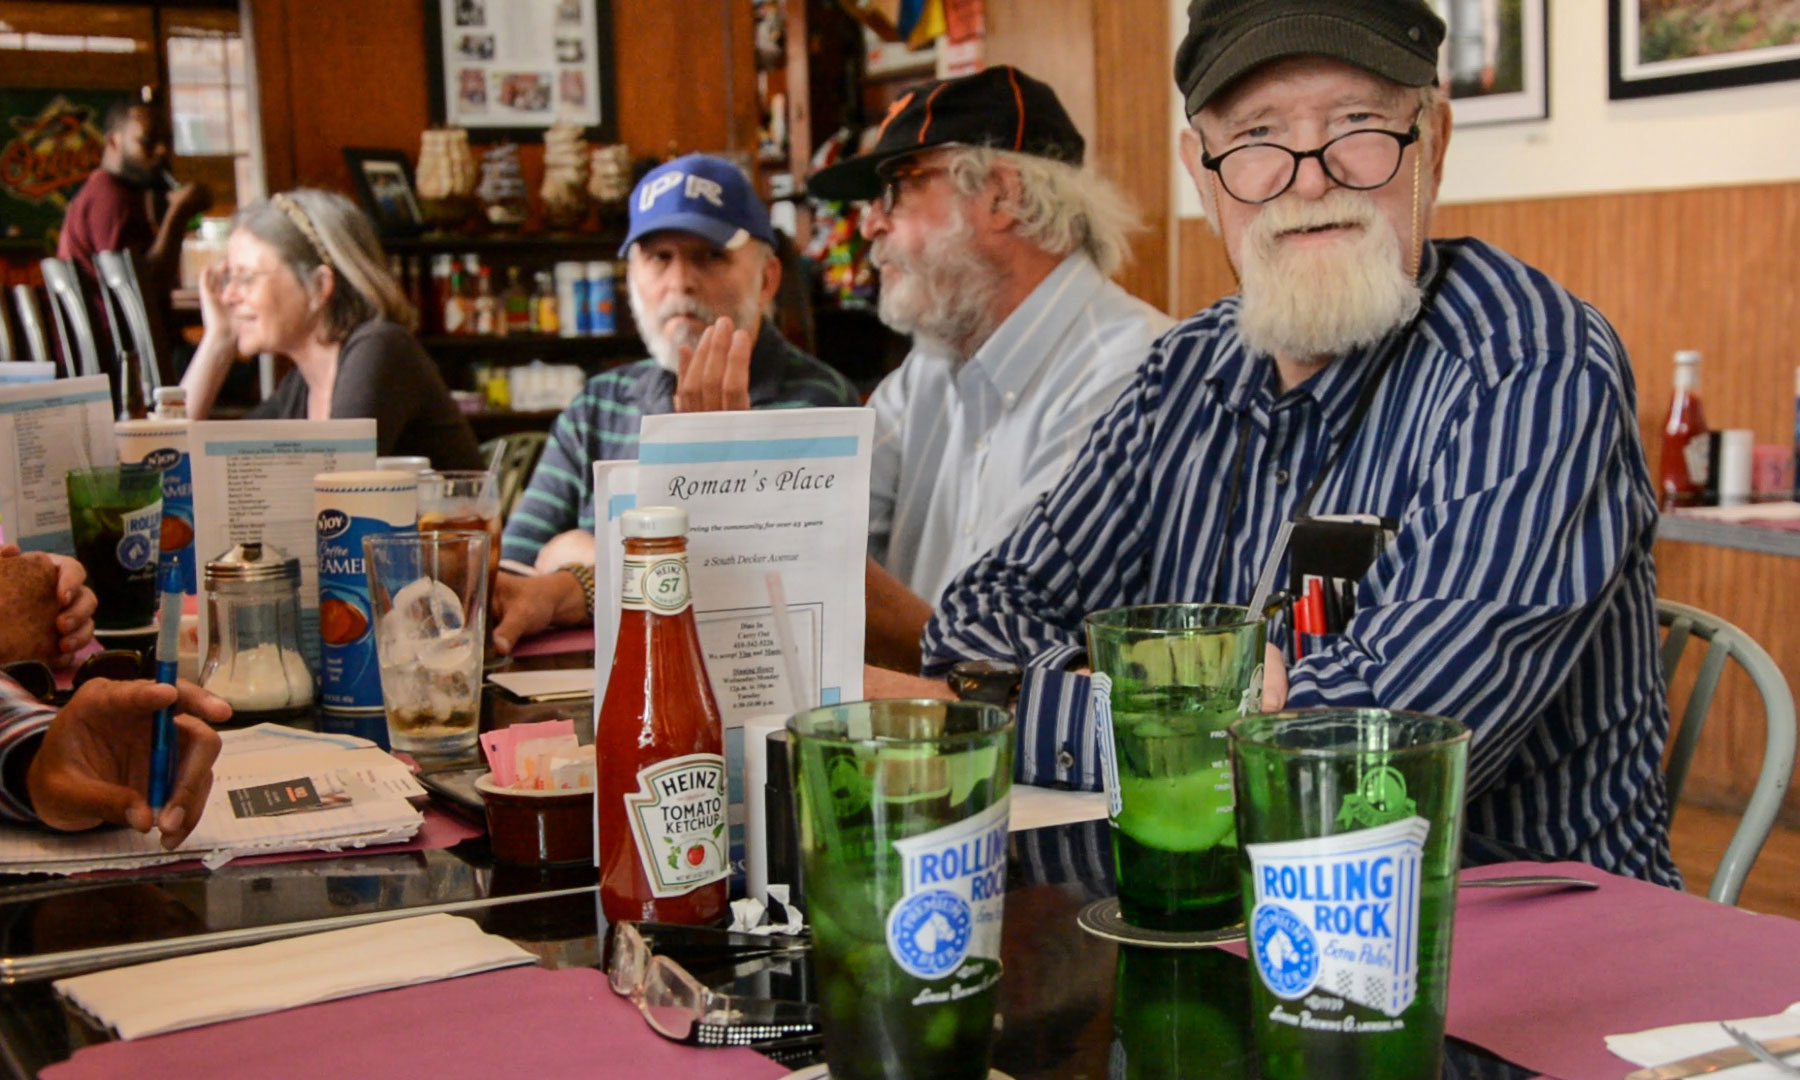 Members of the Aging Newspapermen's Club in Baltimore meet for lunch. L to R: Eileen O'Brien, AL Forman, Ken Sokolow; and Holton Brown.